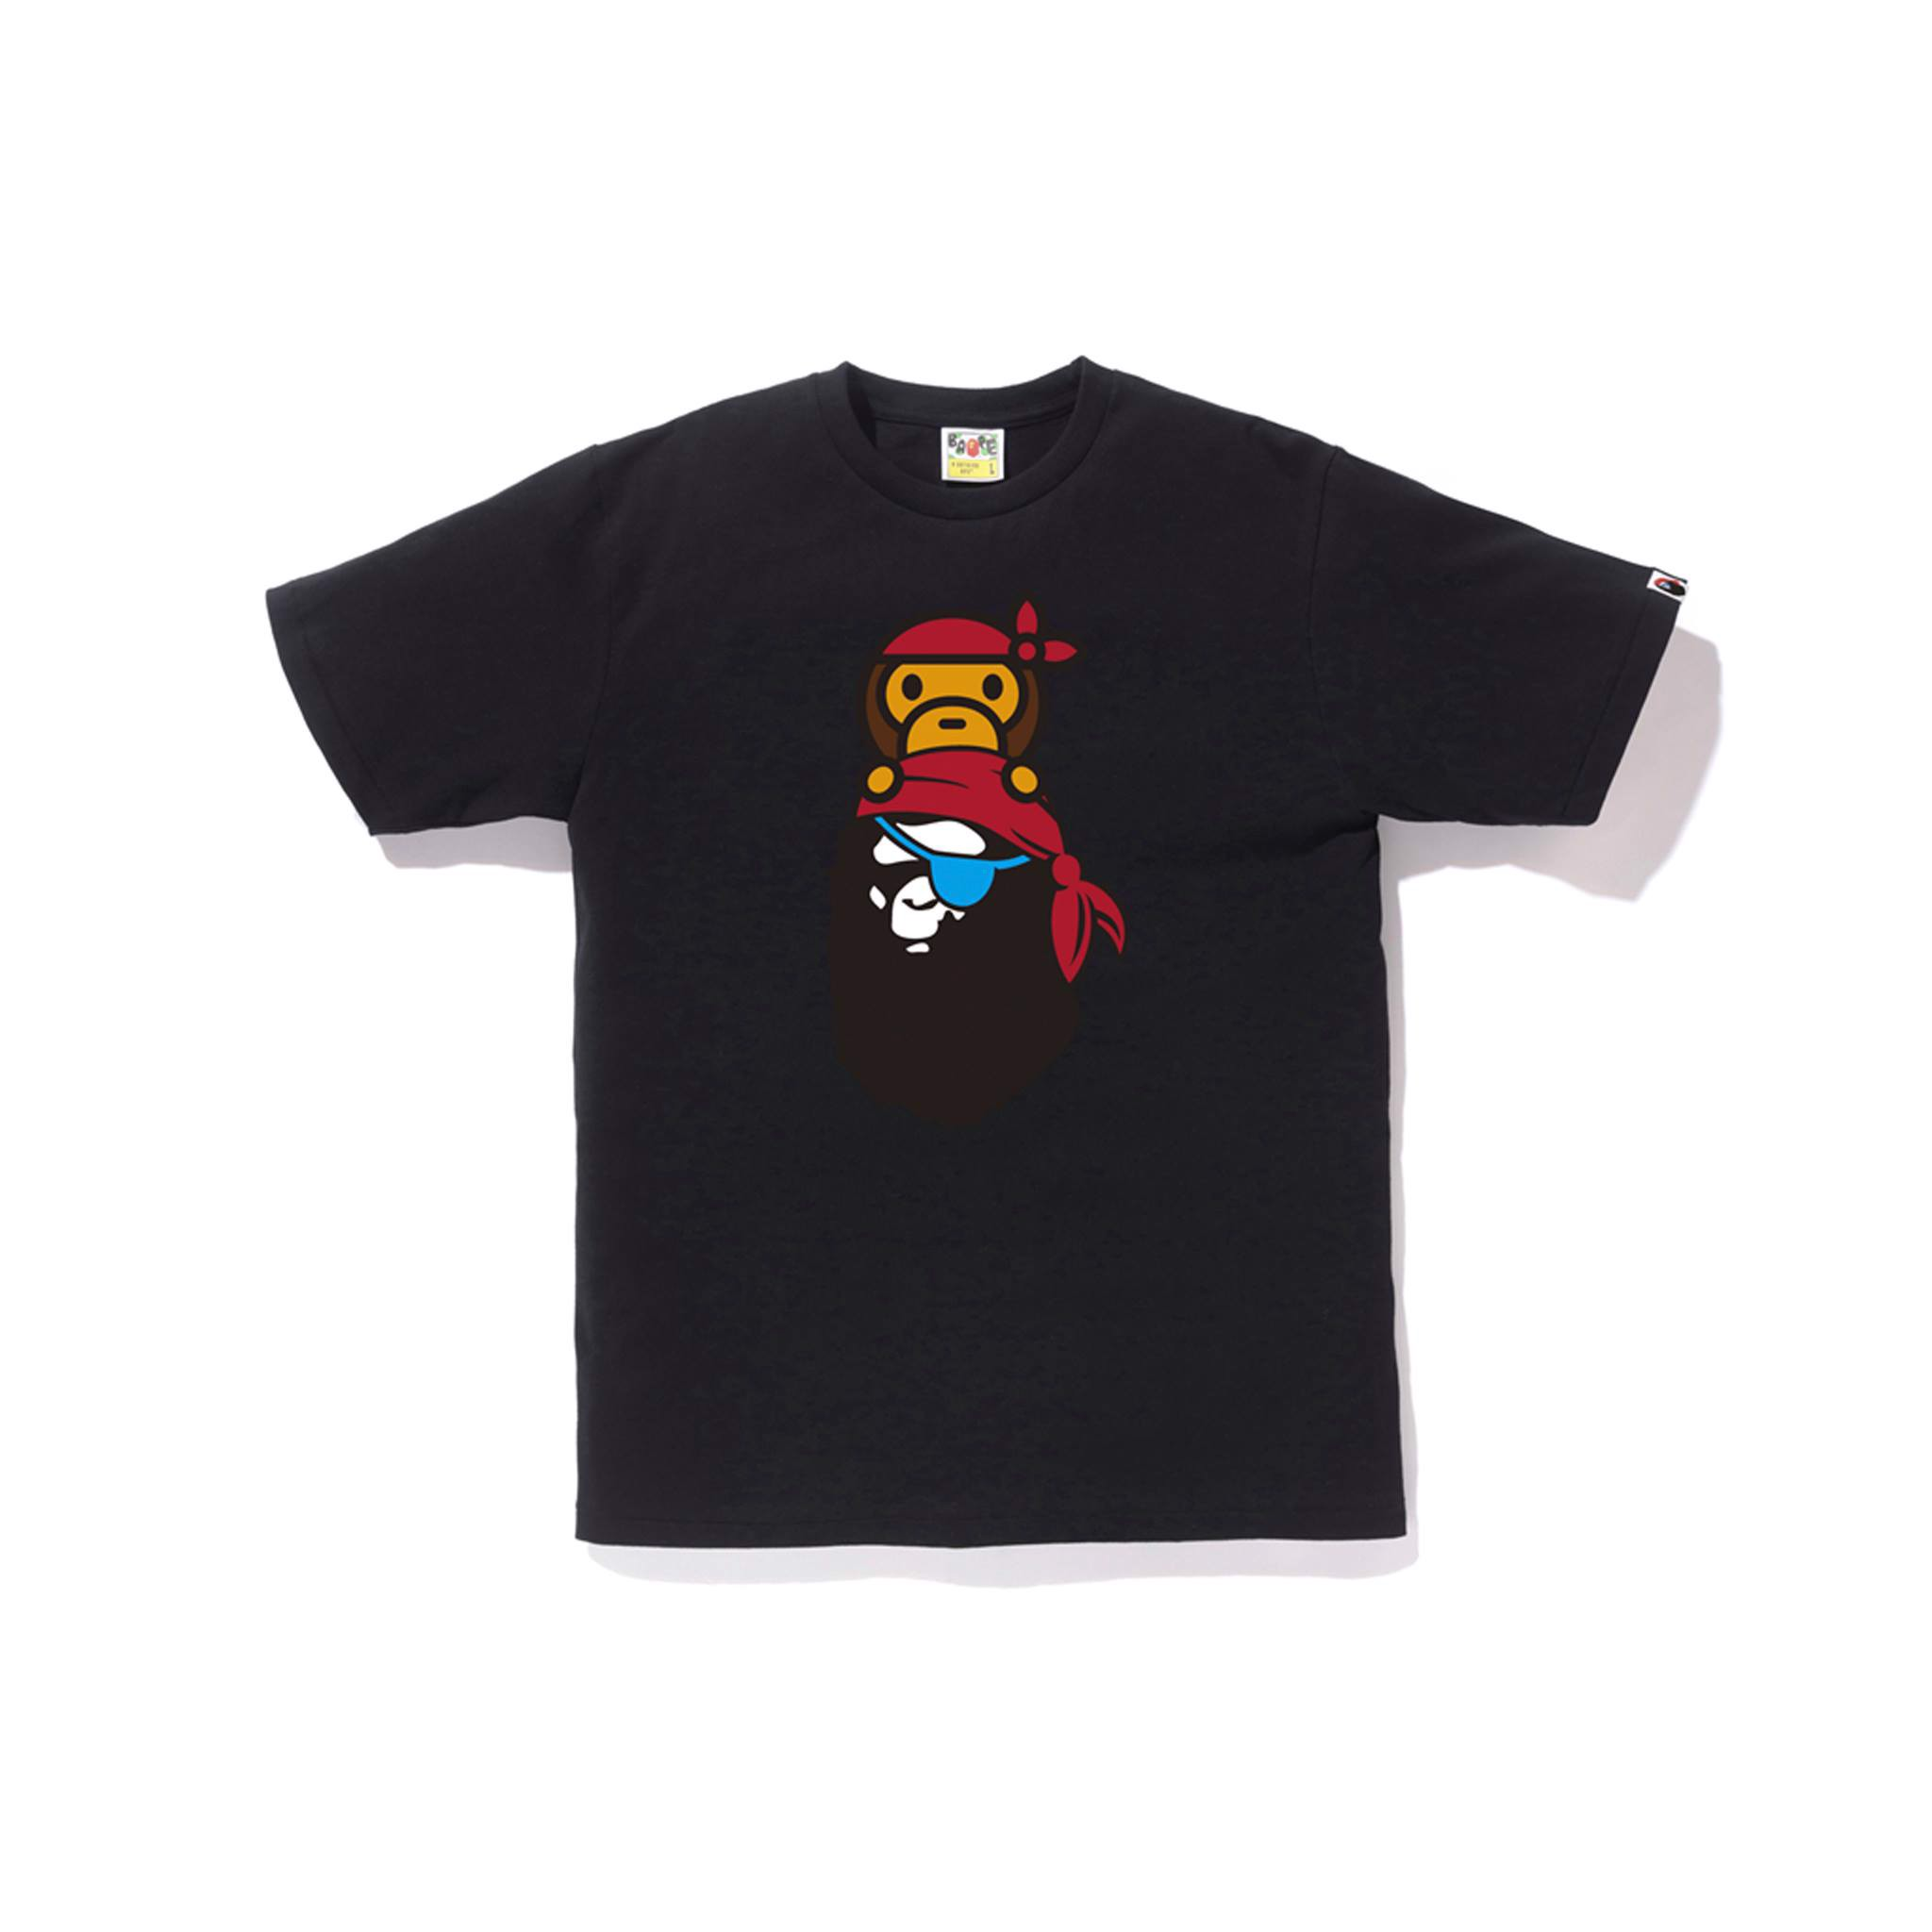 Pirate Milo On Ape Head Tee SS19